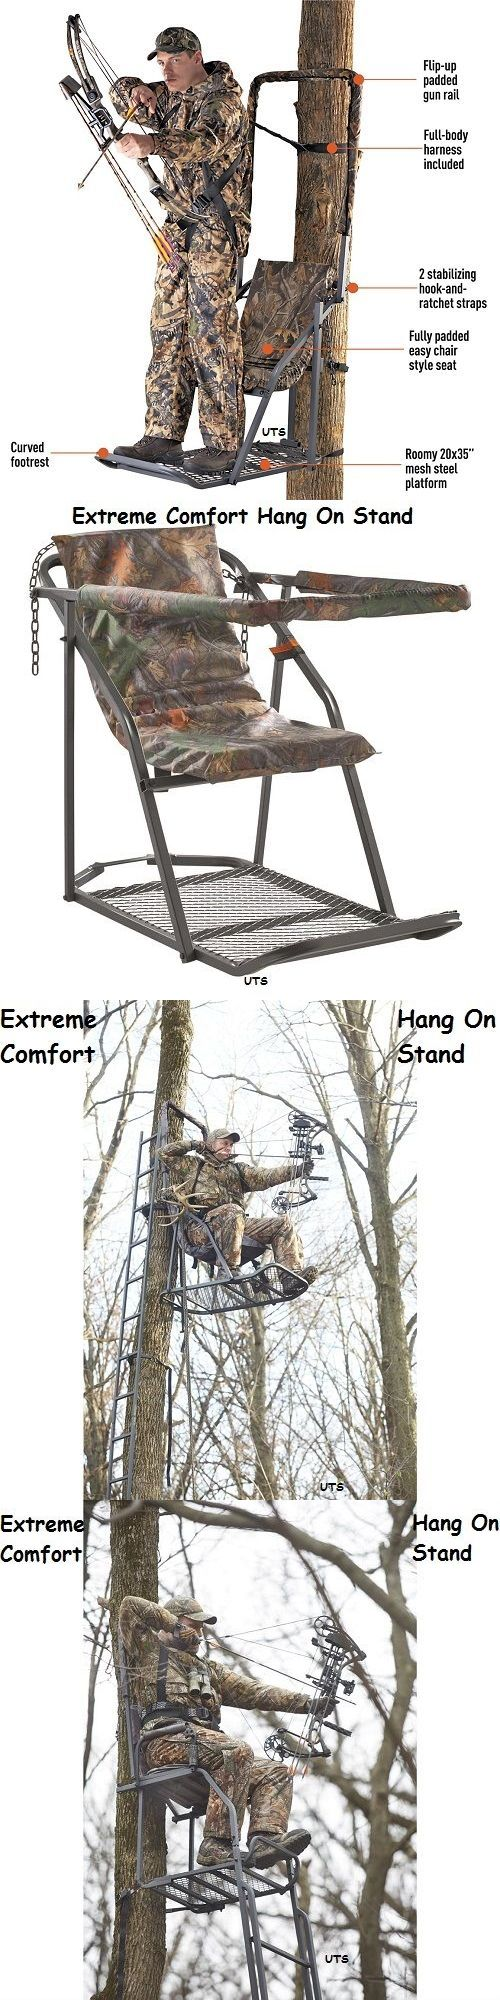 Tree Stands 52508: Tree Stand Extreme Comfort Hang On Treestand Deer Hog Hunting Supplies Bow Gun -> BUY IT NOW ONLY: $99.87 on eBay!